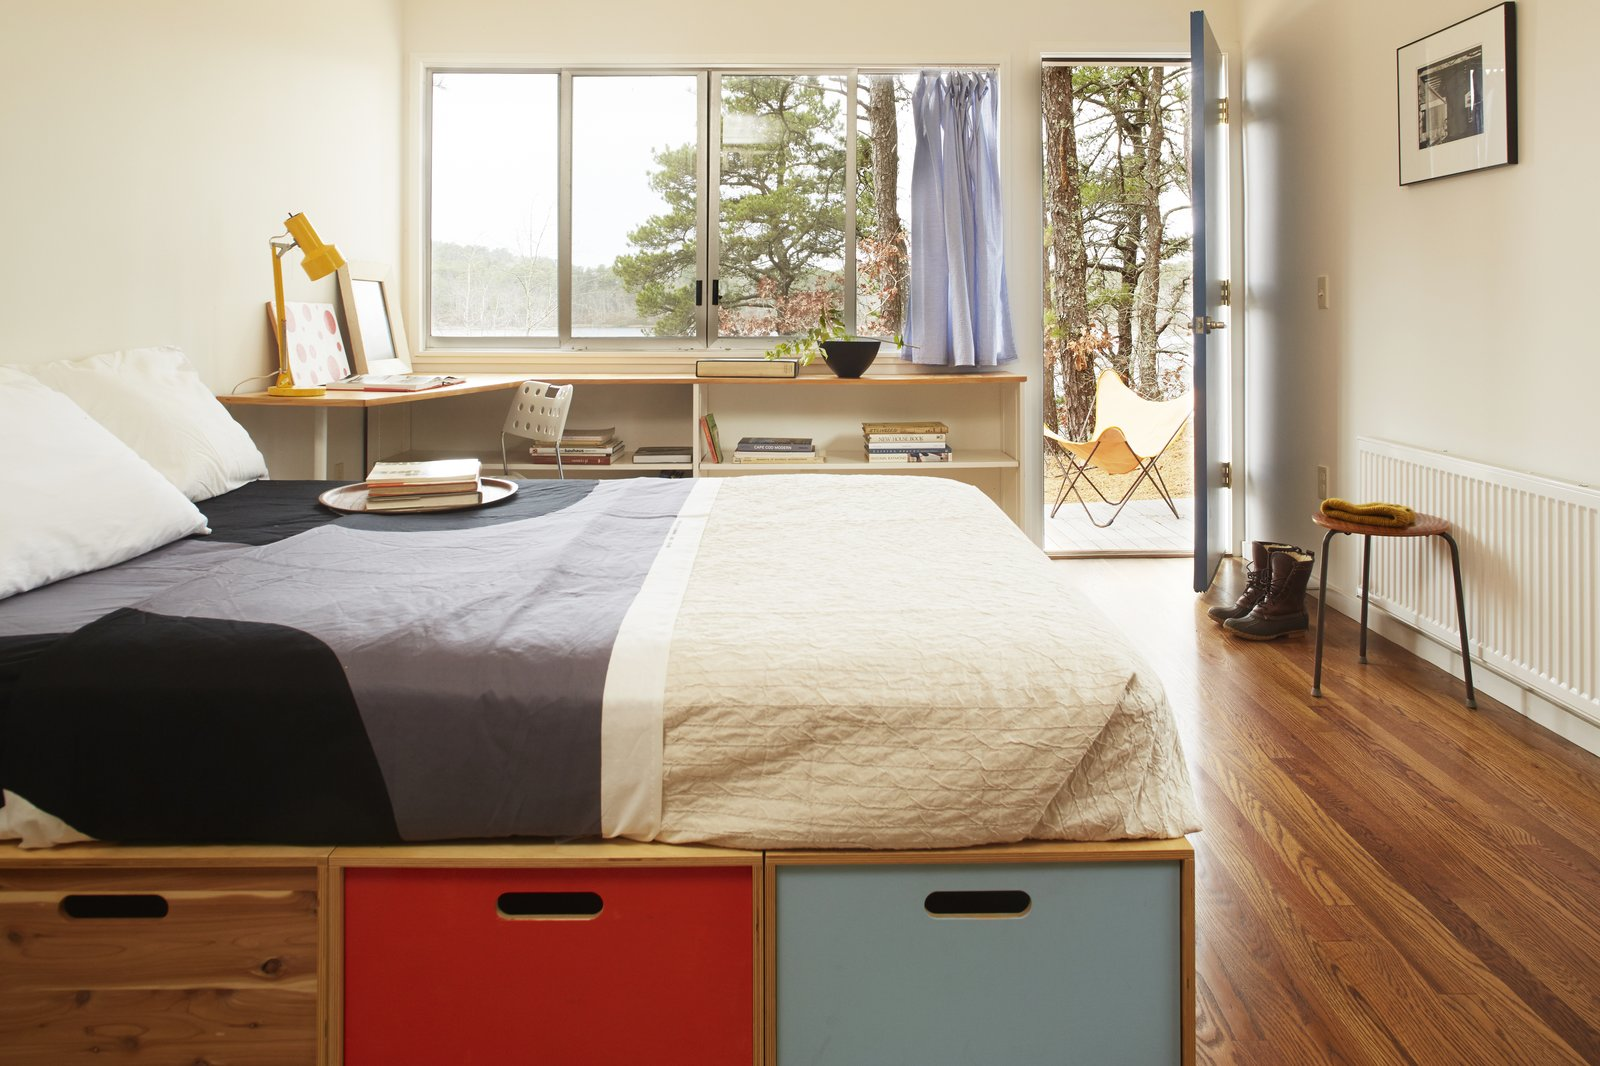 Bedroom, Shelves, Bed, Storage, Lamps, Table Lighting, and Medium Hardwood Floor The bedroom zone has fairly enclosed stud-walls.  Photo 9 of 9 in Experience Cape Cod Modern by Staying at the Midcentury Weidlinger House